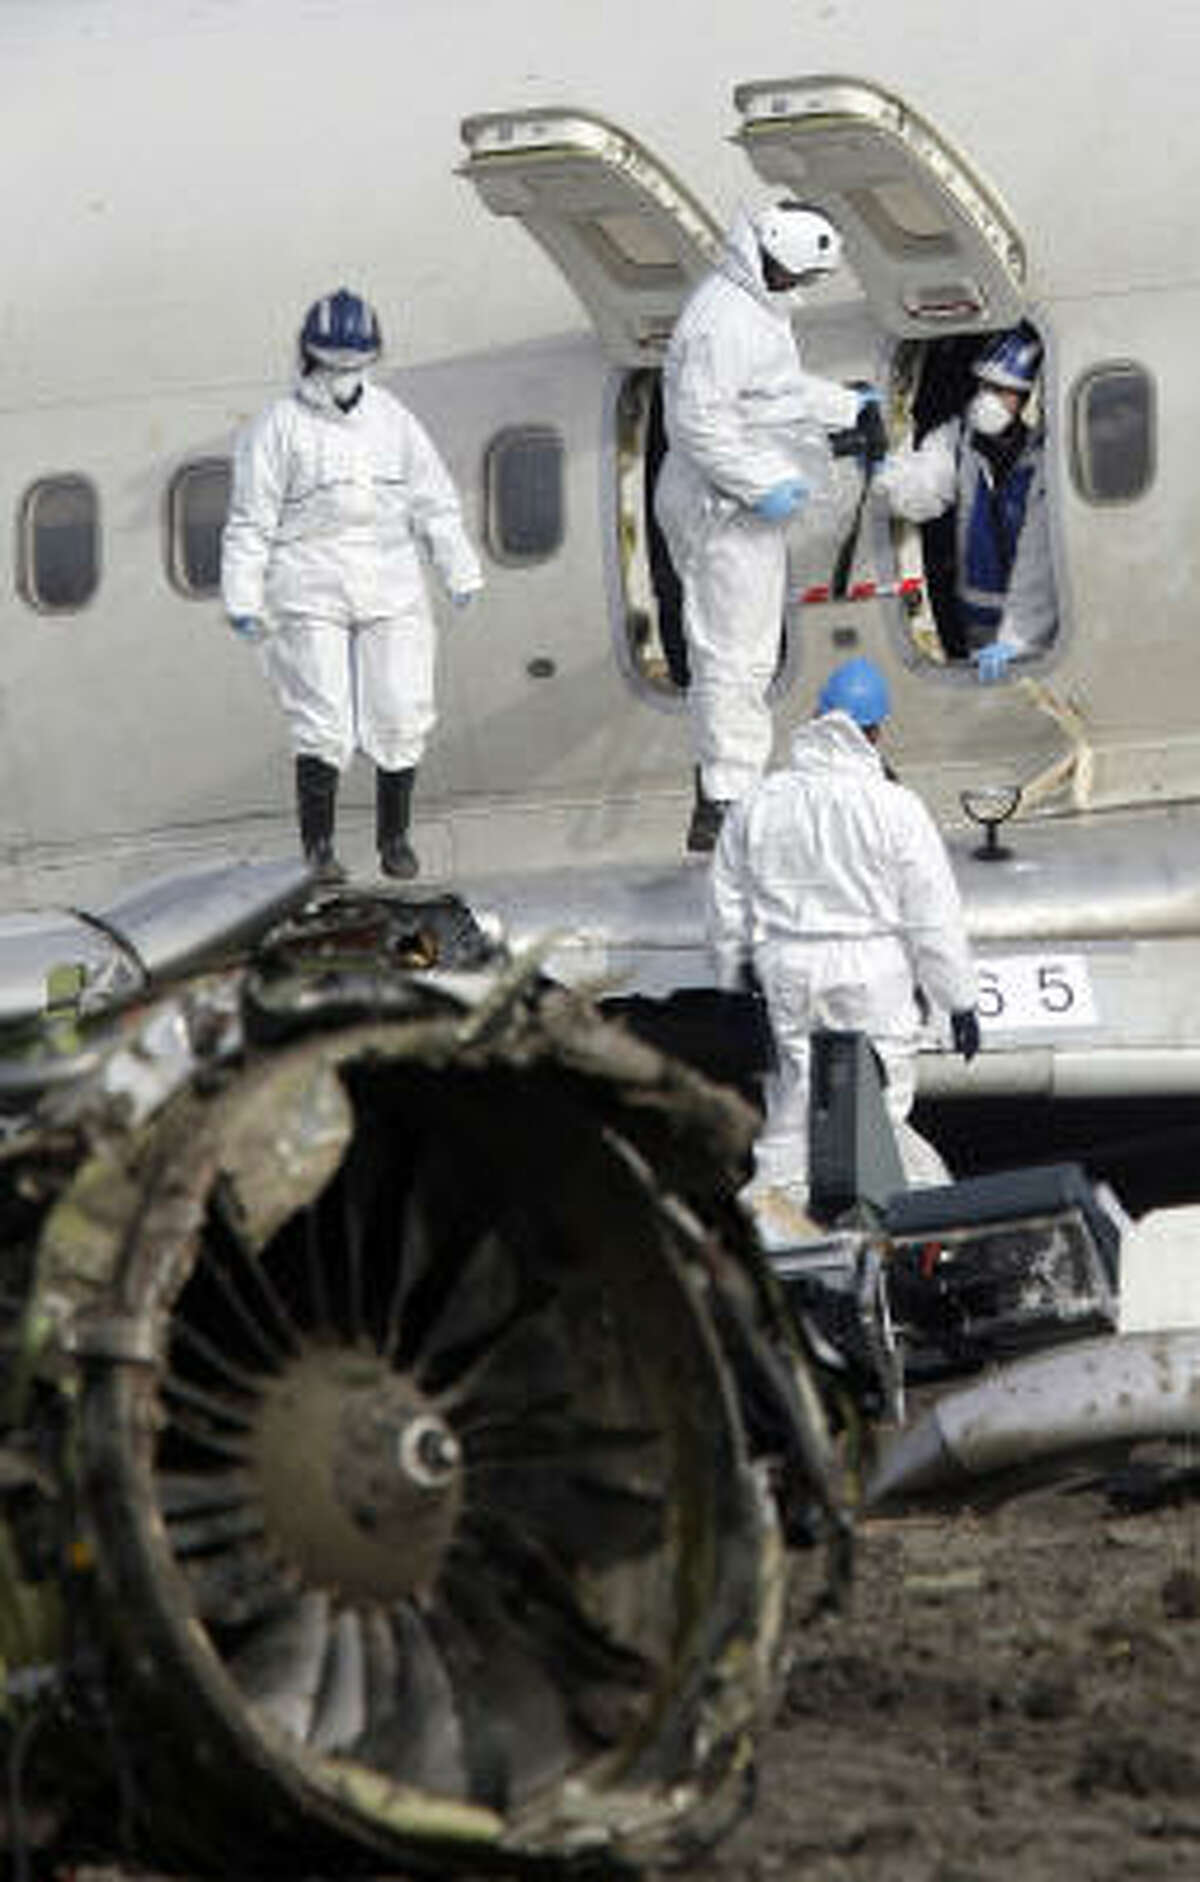 Investigators took detailed photos of the wreckage at Amsterdam's Schiphol Airport Thursday, trying to piece together why the plane lost speed and crashed into a muddy field, killing nine people and injuring 86.